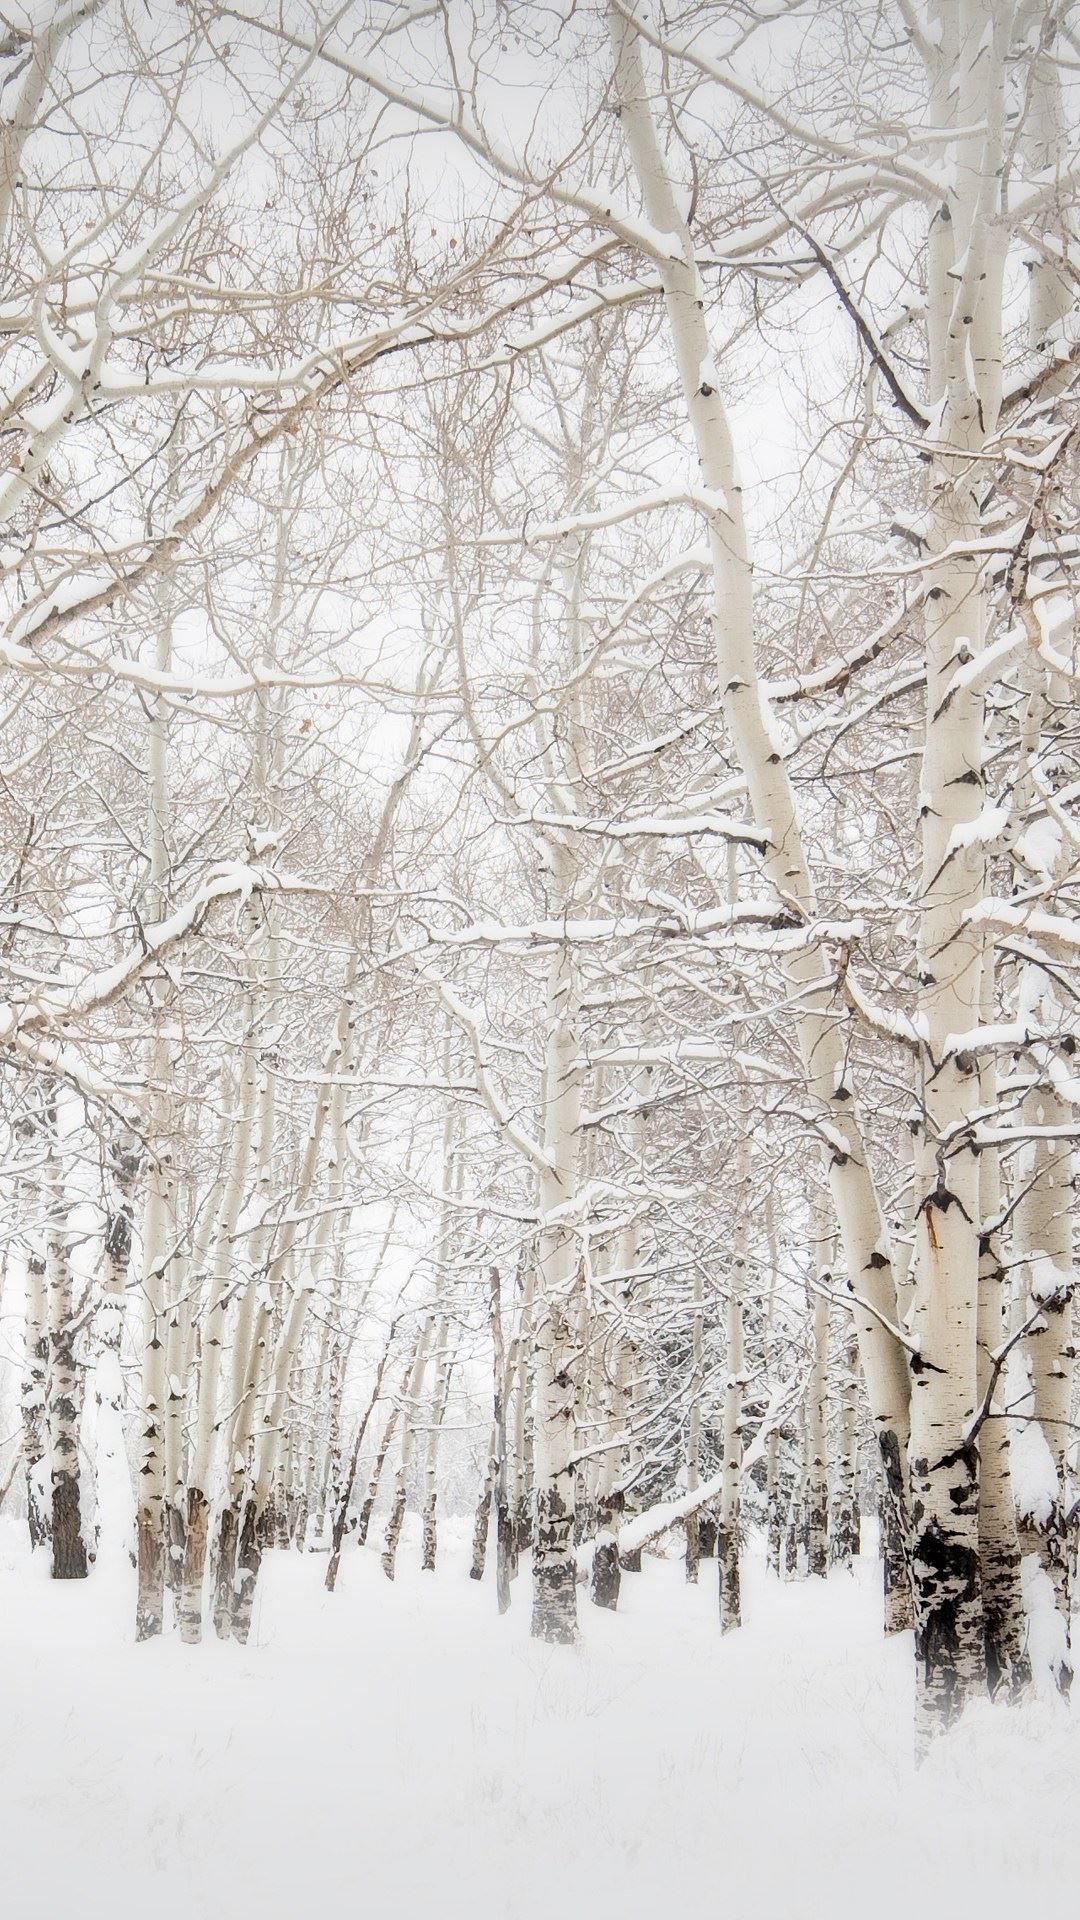 Birch trees in the winter stock photo image 2170700 - Snow Birch Forest Near Sea Stock Photo Dr Pas 6415491